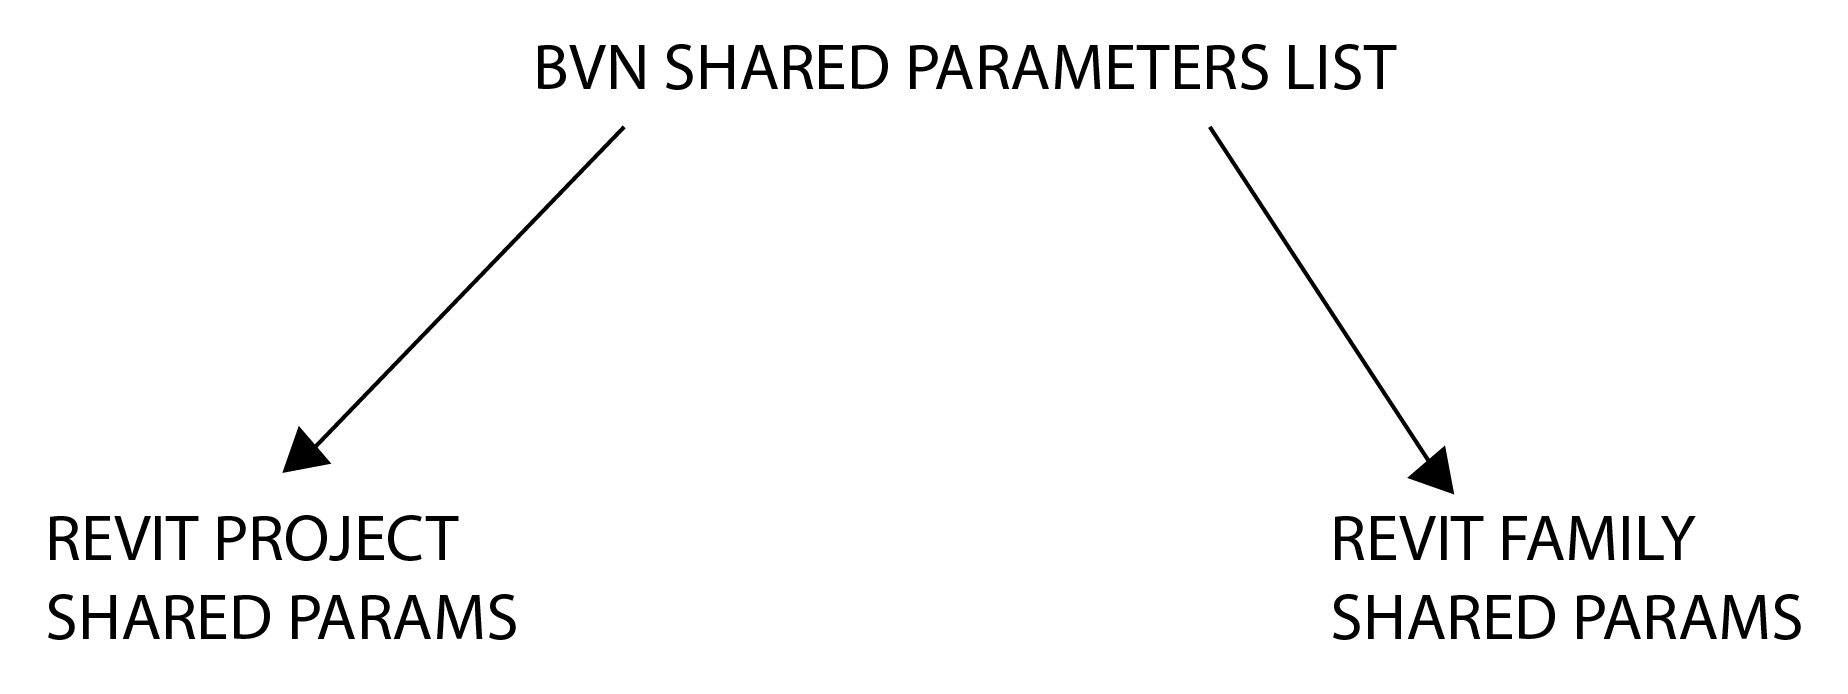 Shared Parameters